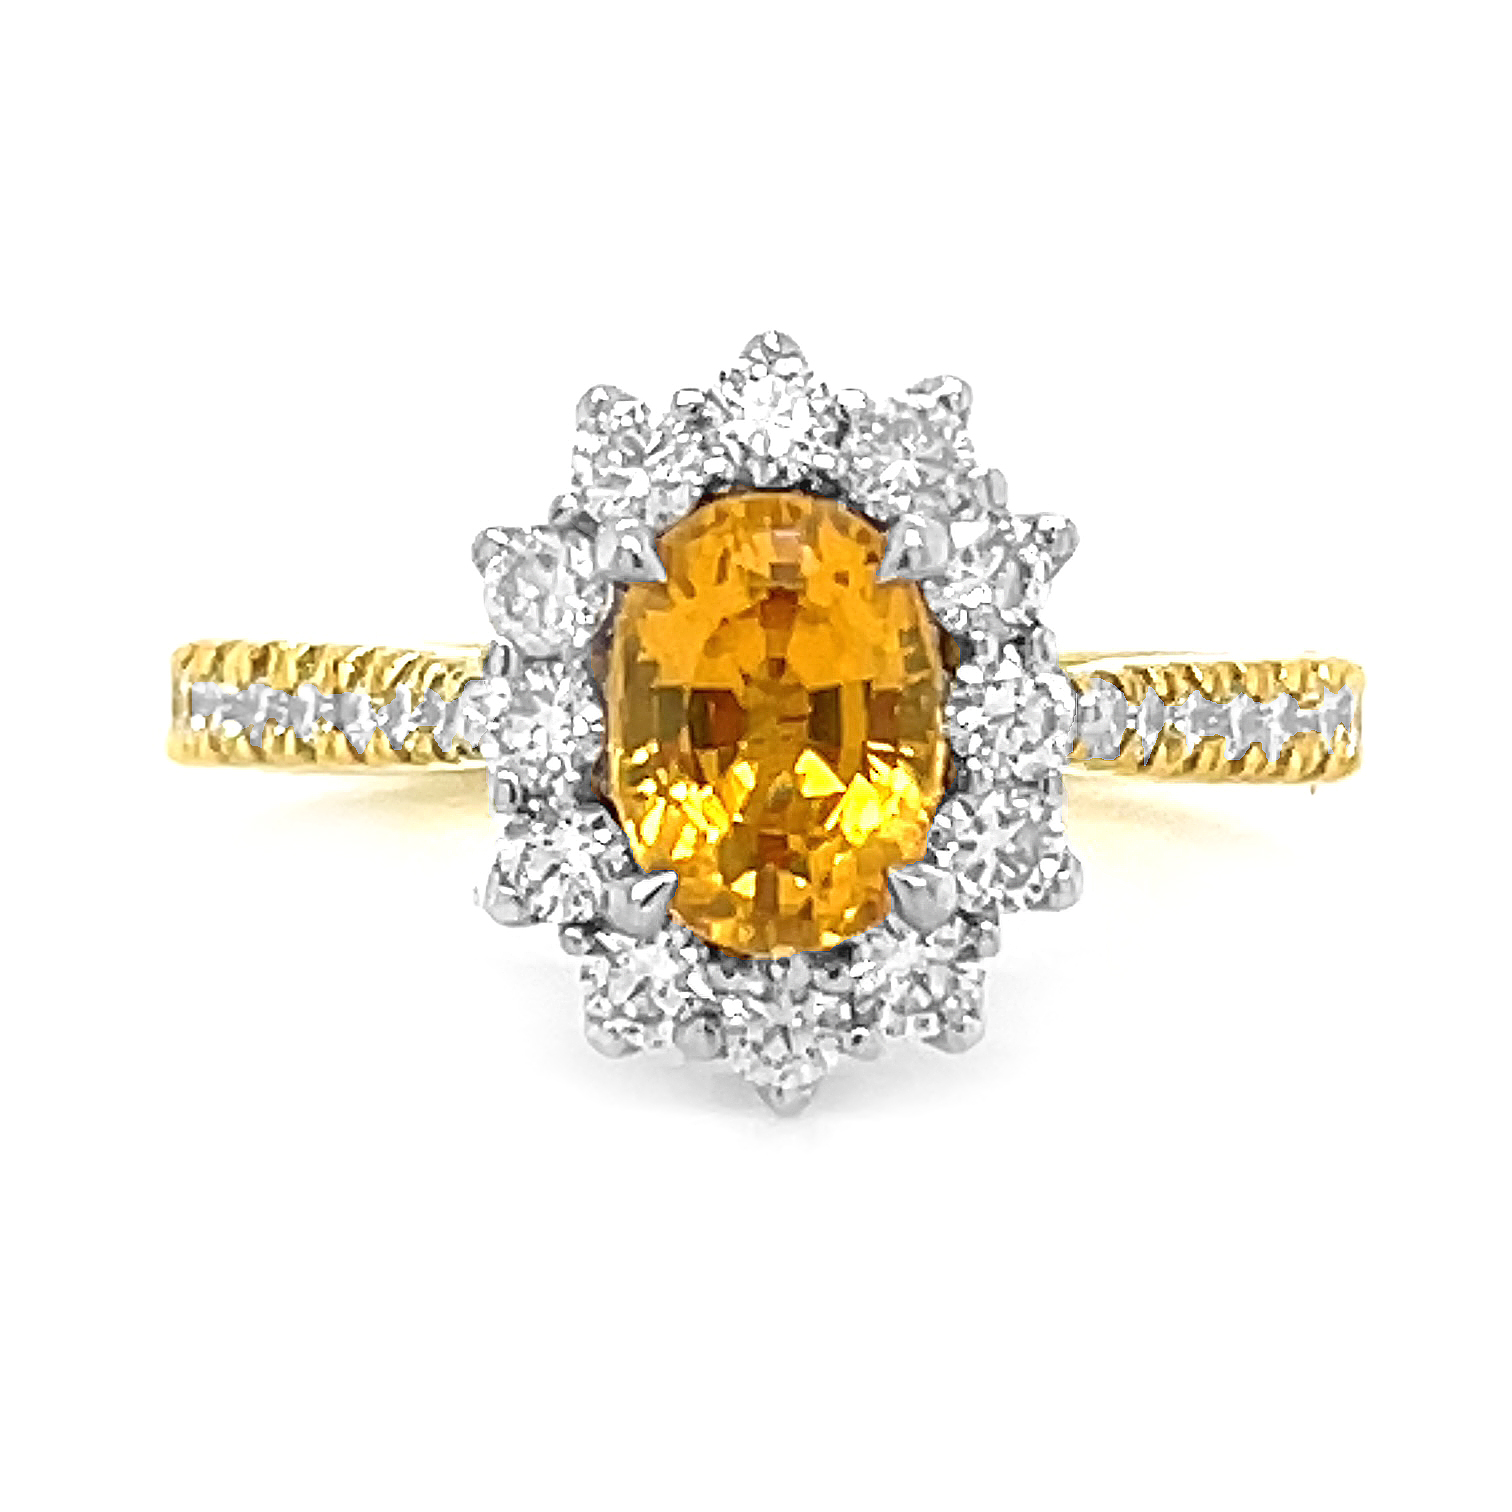 18k Yellow & White Gold Oval Yellow Sapphire & Brilliant Cut Diamond Cluster Ring